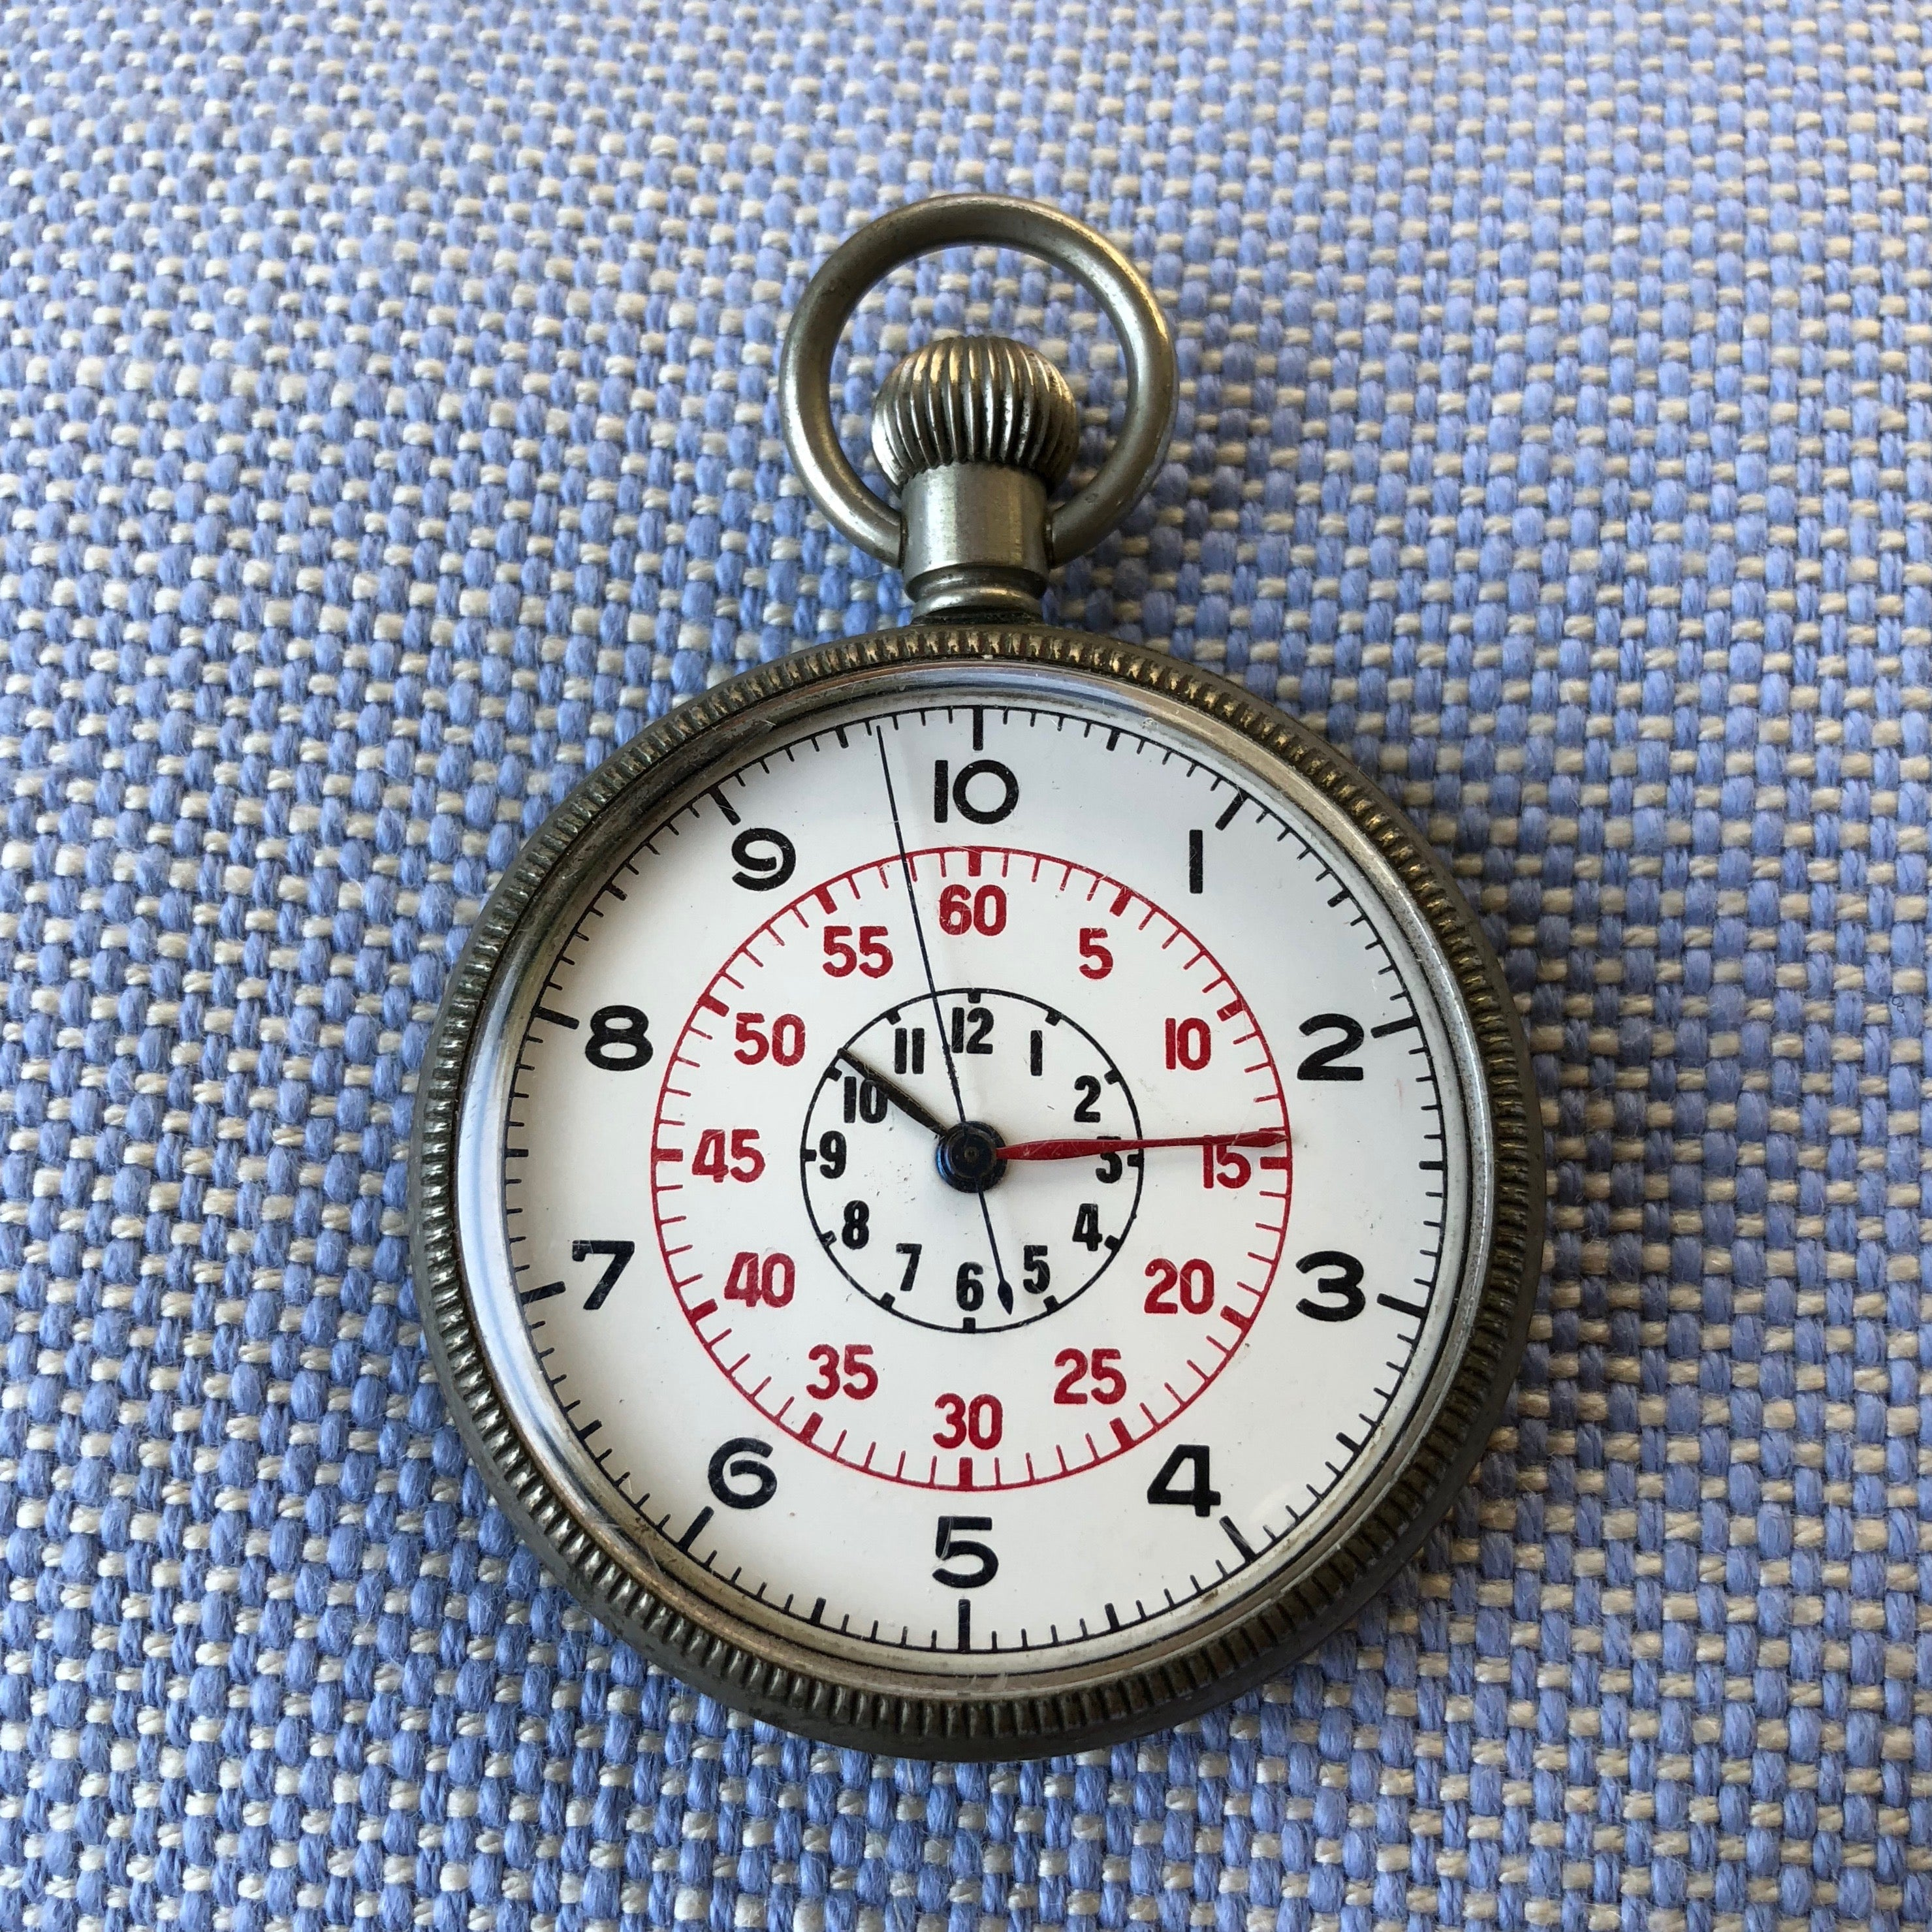 Vintage Zenith Royal Navy Deck H.S.3 WWII Military Pocket Watch - Hashtag Watch Company